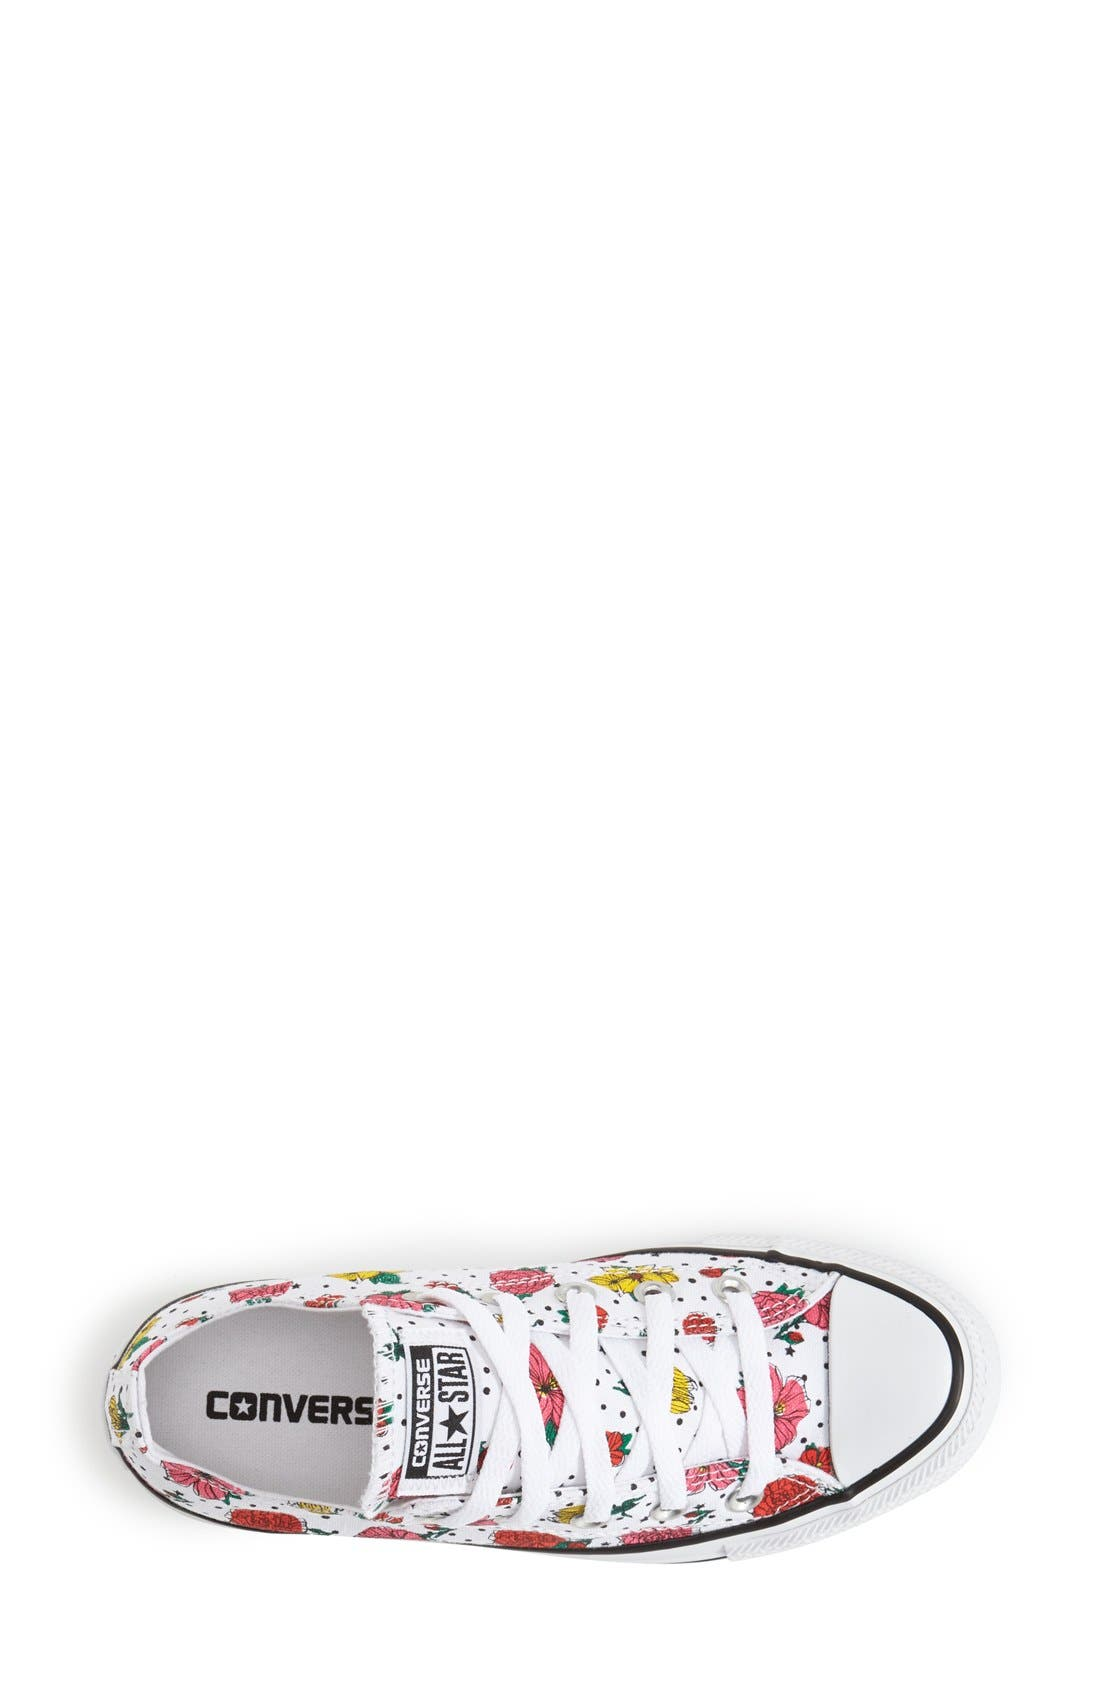 Alternate Image 3  - Converse Chuck Taylor® All Star® Floral Polka Dot Low Top Sneaker (Women)